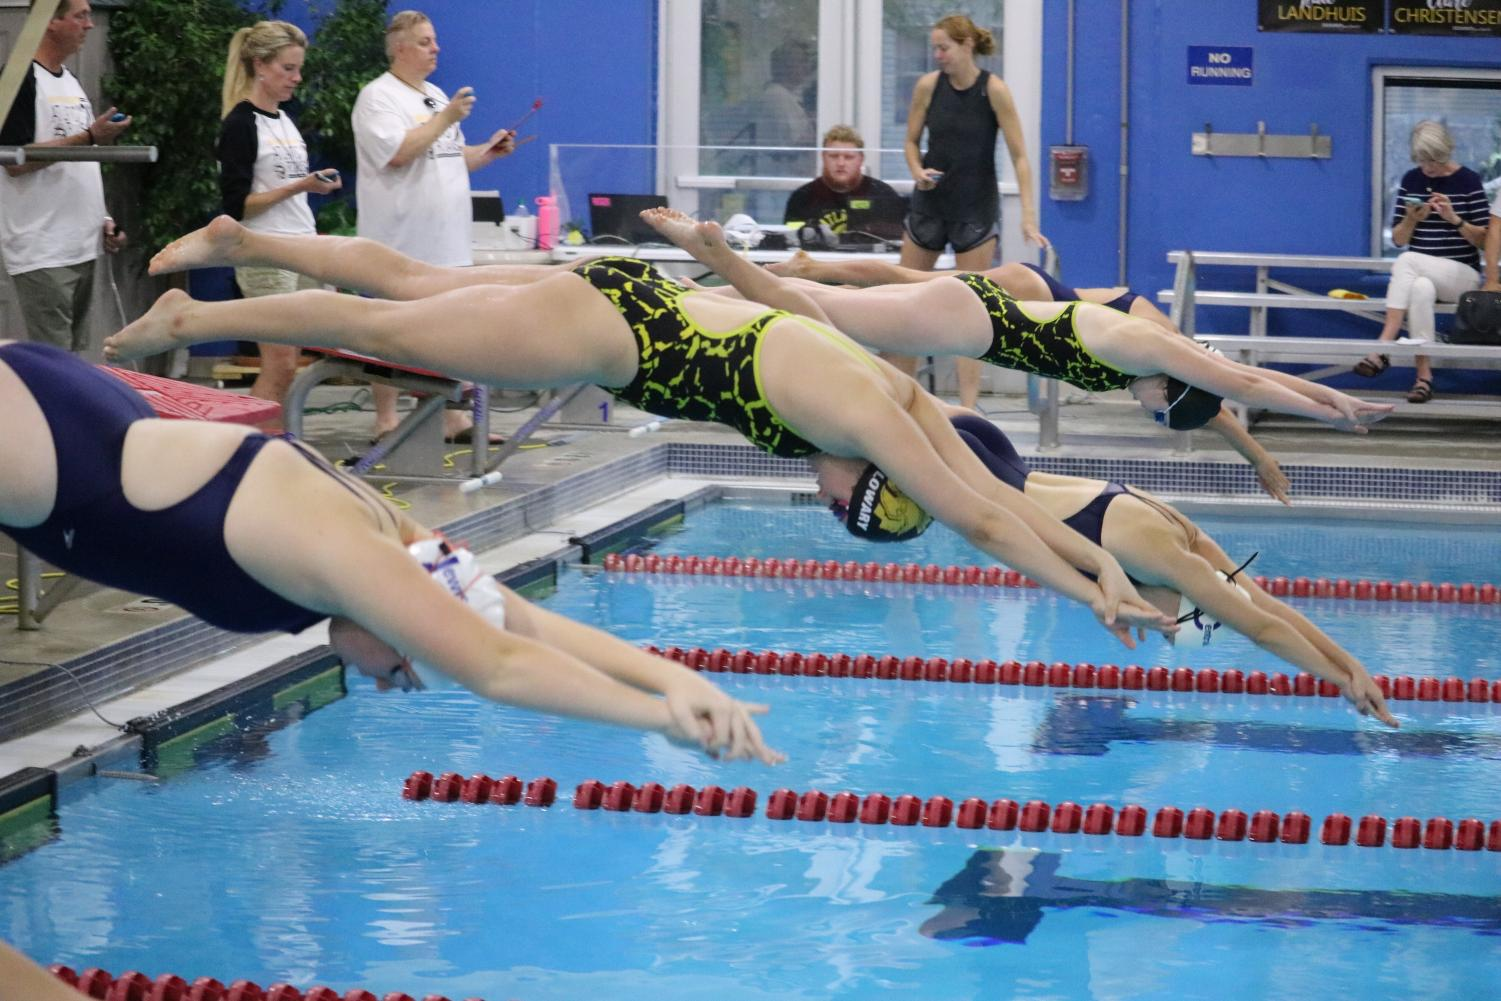 Members of the Atlantic swim team dive into the pool on Tuesday against Lewis Central. Practices and home competitions are held at the Nishna Valley YMCA.